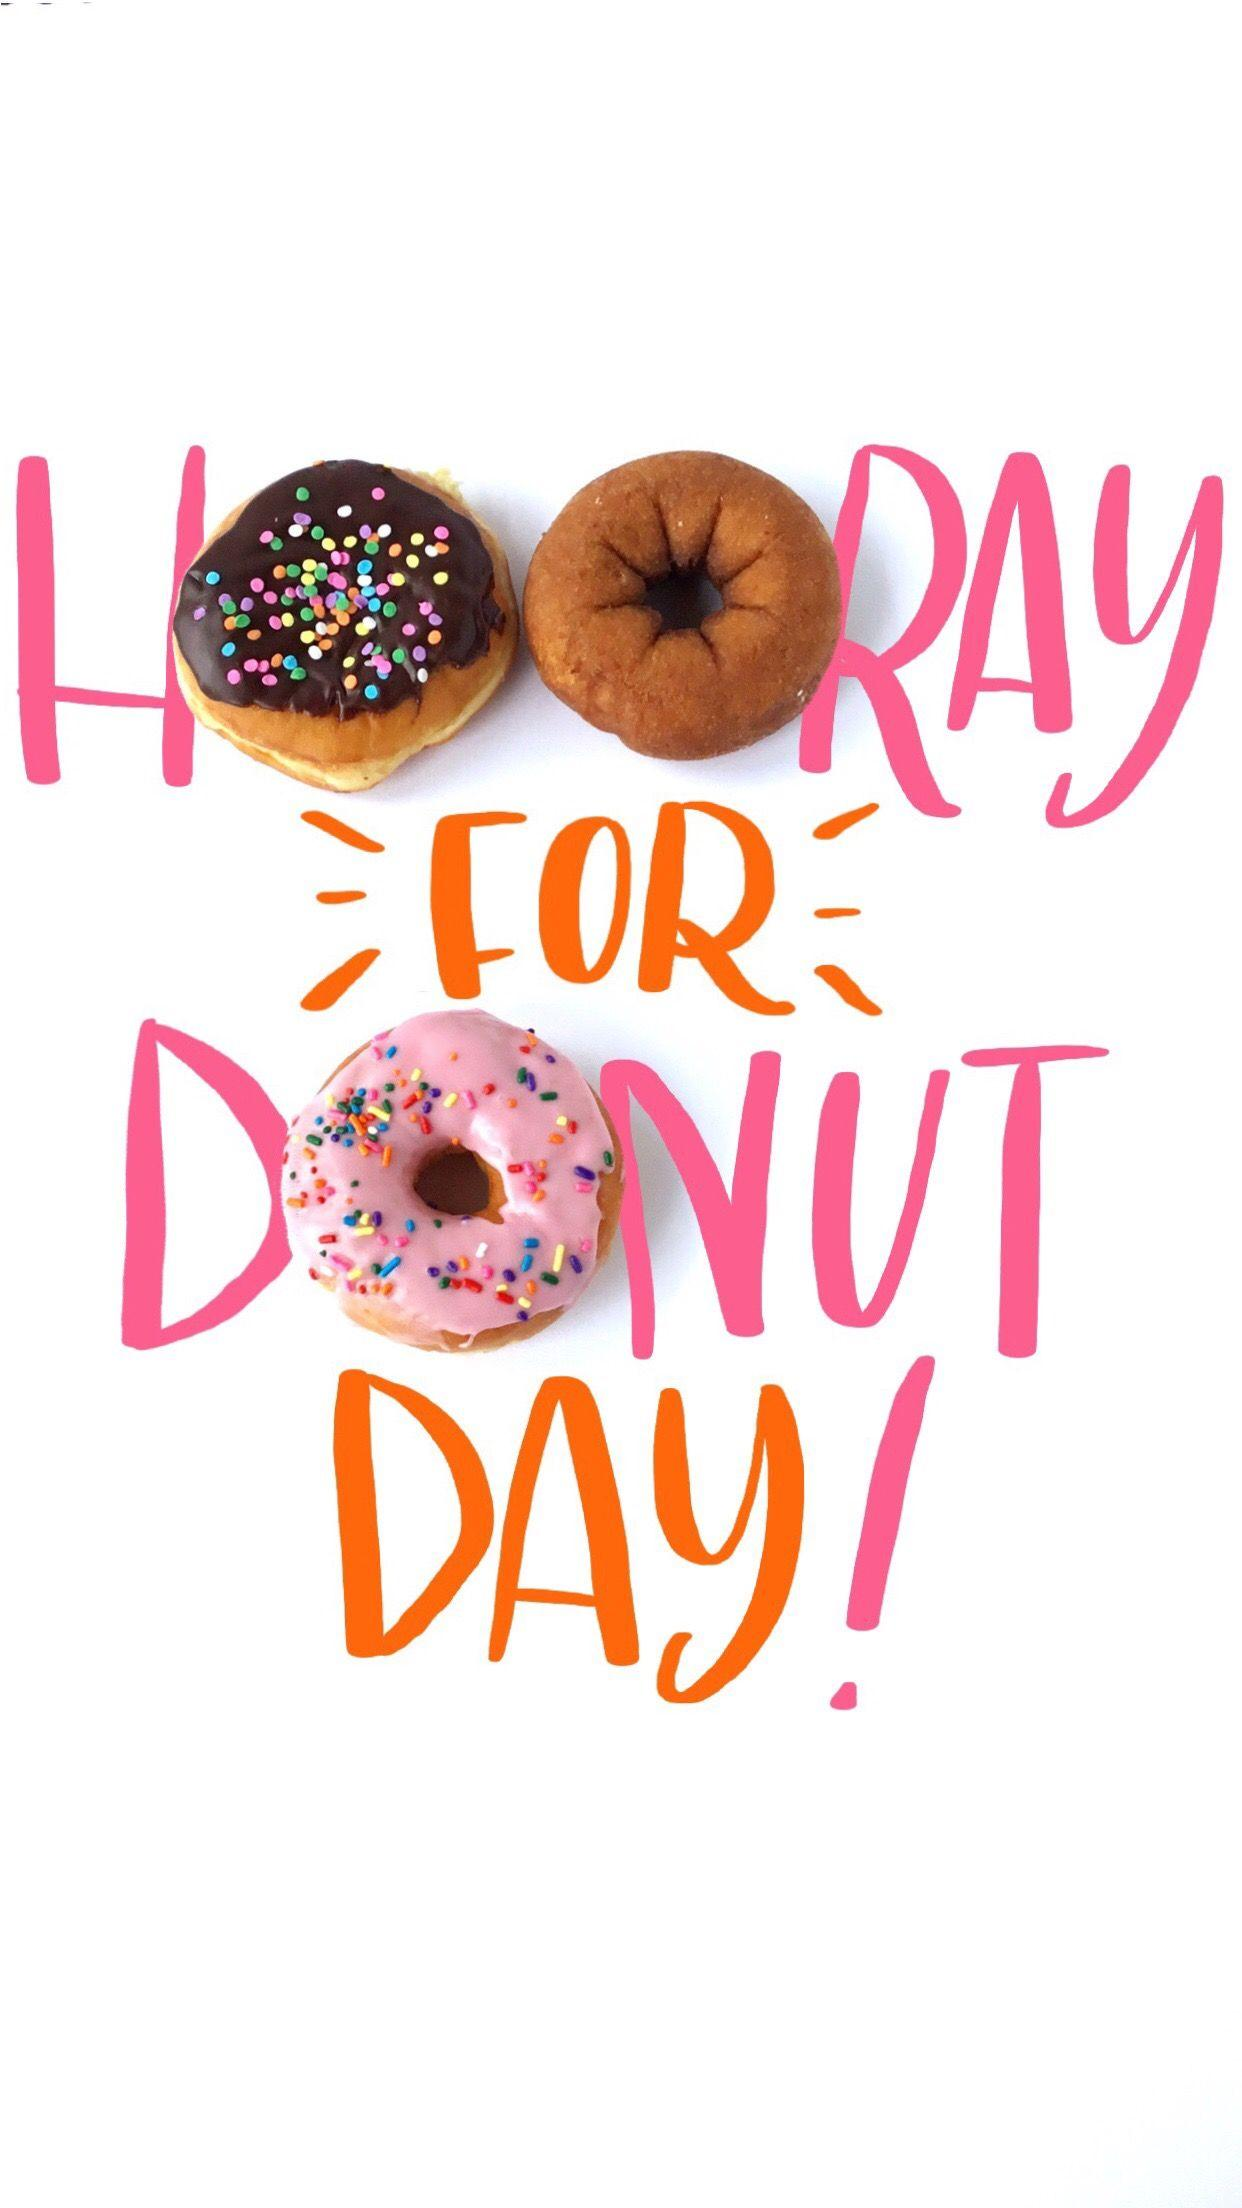 Donut Day Iphone Wallpaper